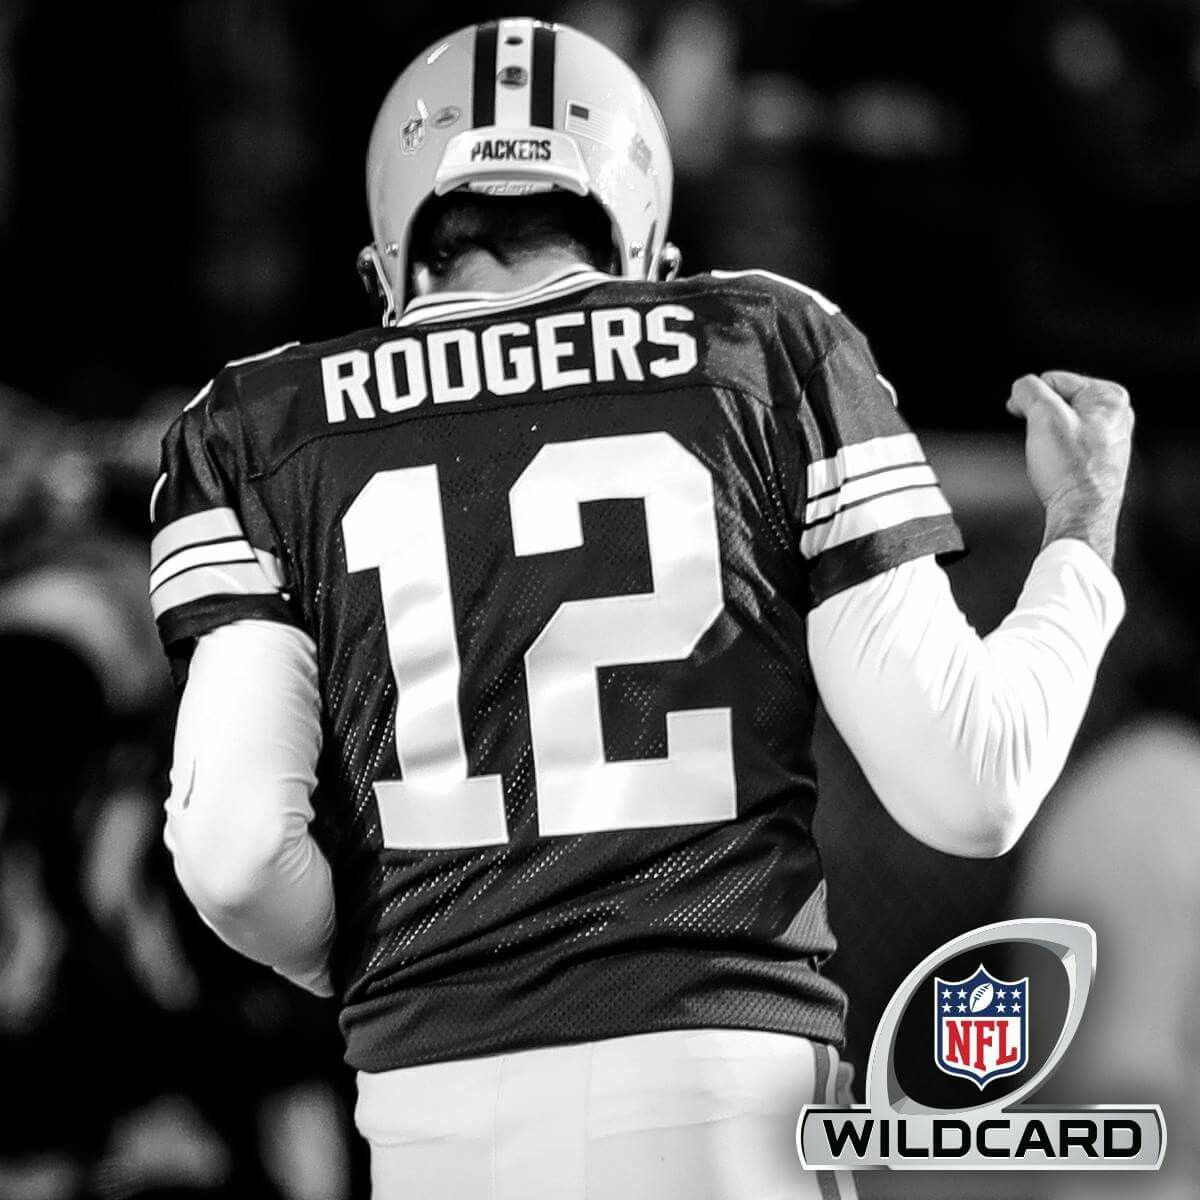 Rodgers Nfl Wildcard Green Bay Packers Best Football Team